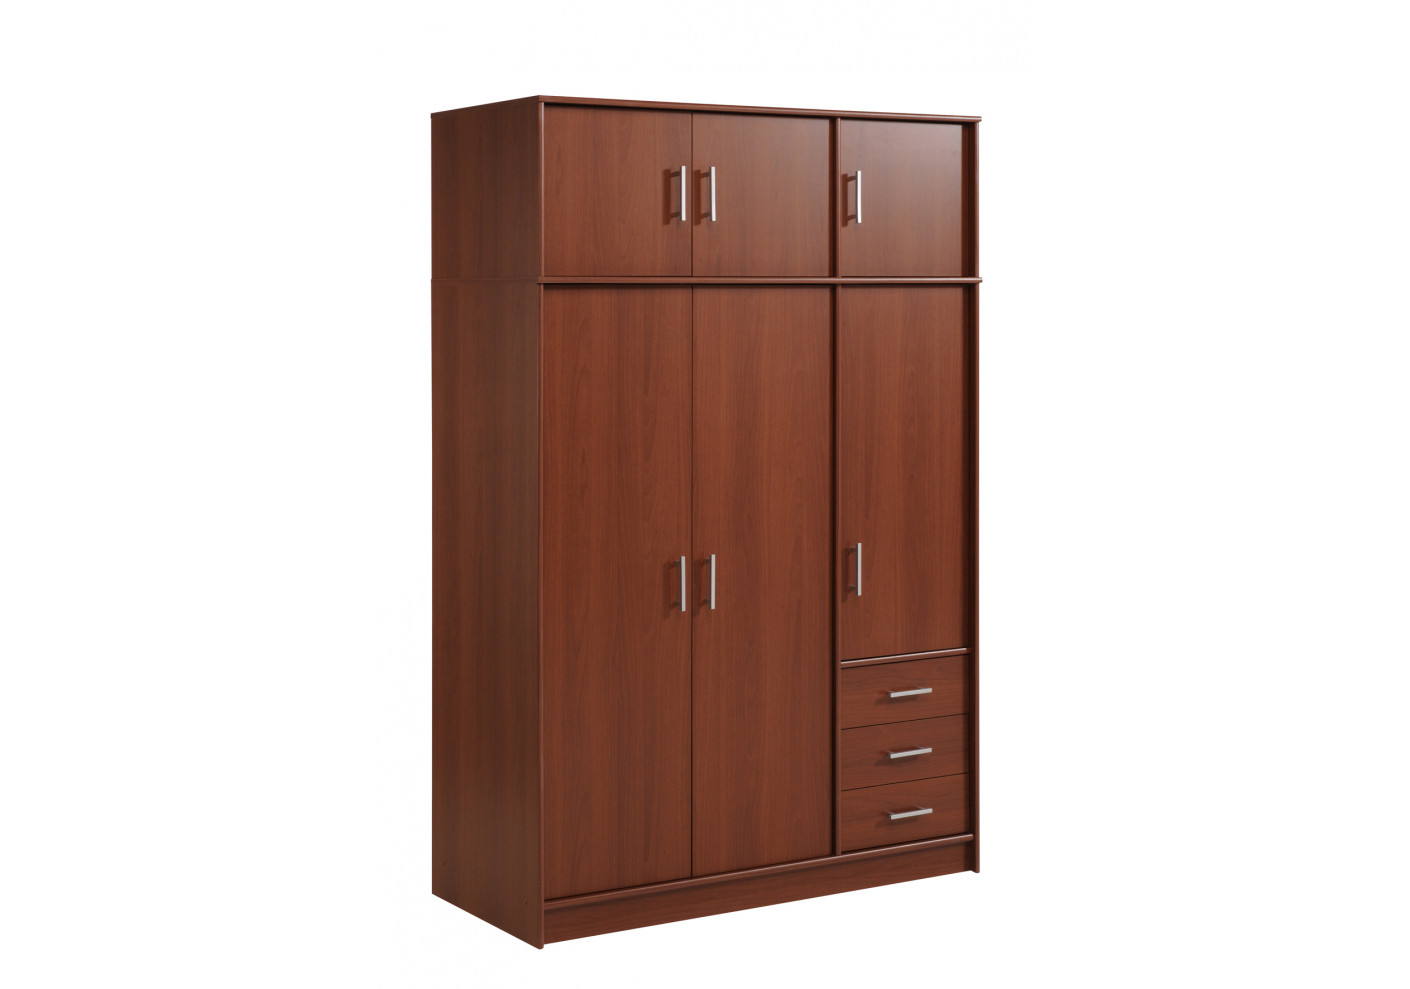 armoire essentiel 6 portes 3 tiroirs merisier. Black Bedroom Furniture Sets. Home Design Ideas